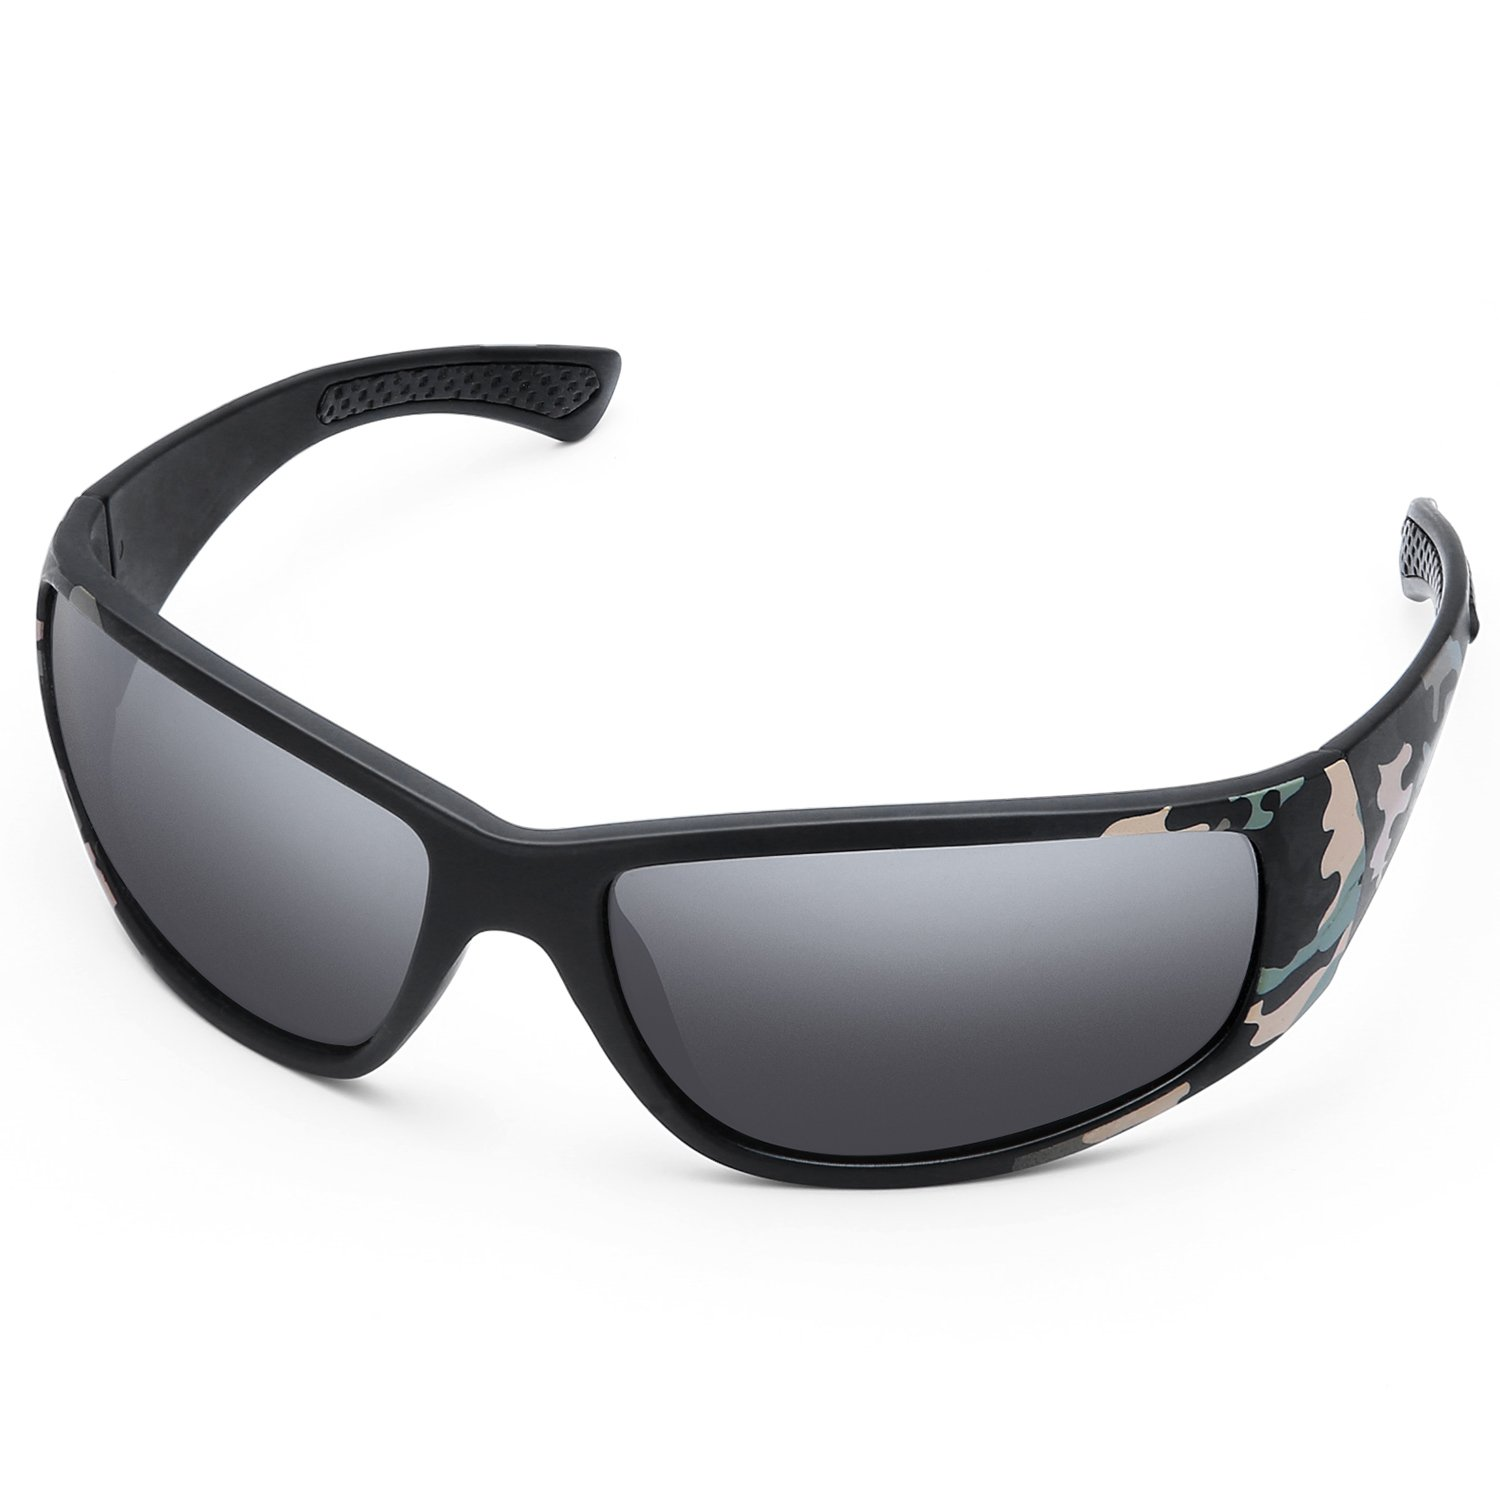 KUTOOK Polarized Sports Sunglasses for Men Women Hiking Sun Glasses LG508-004